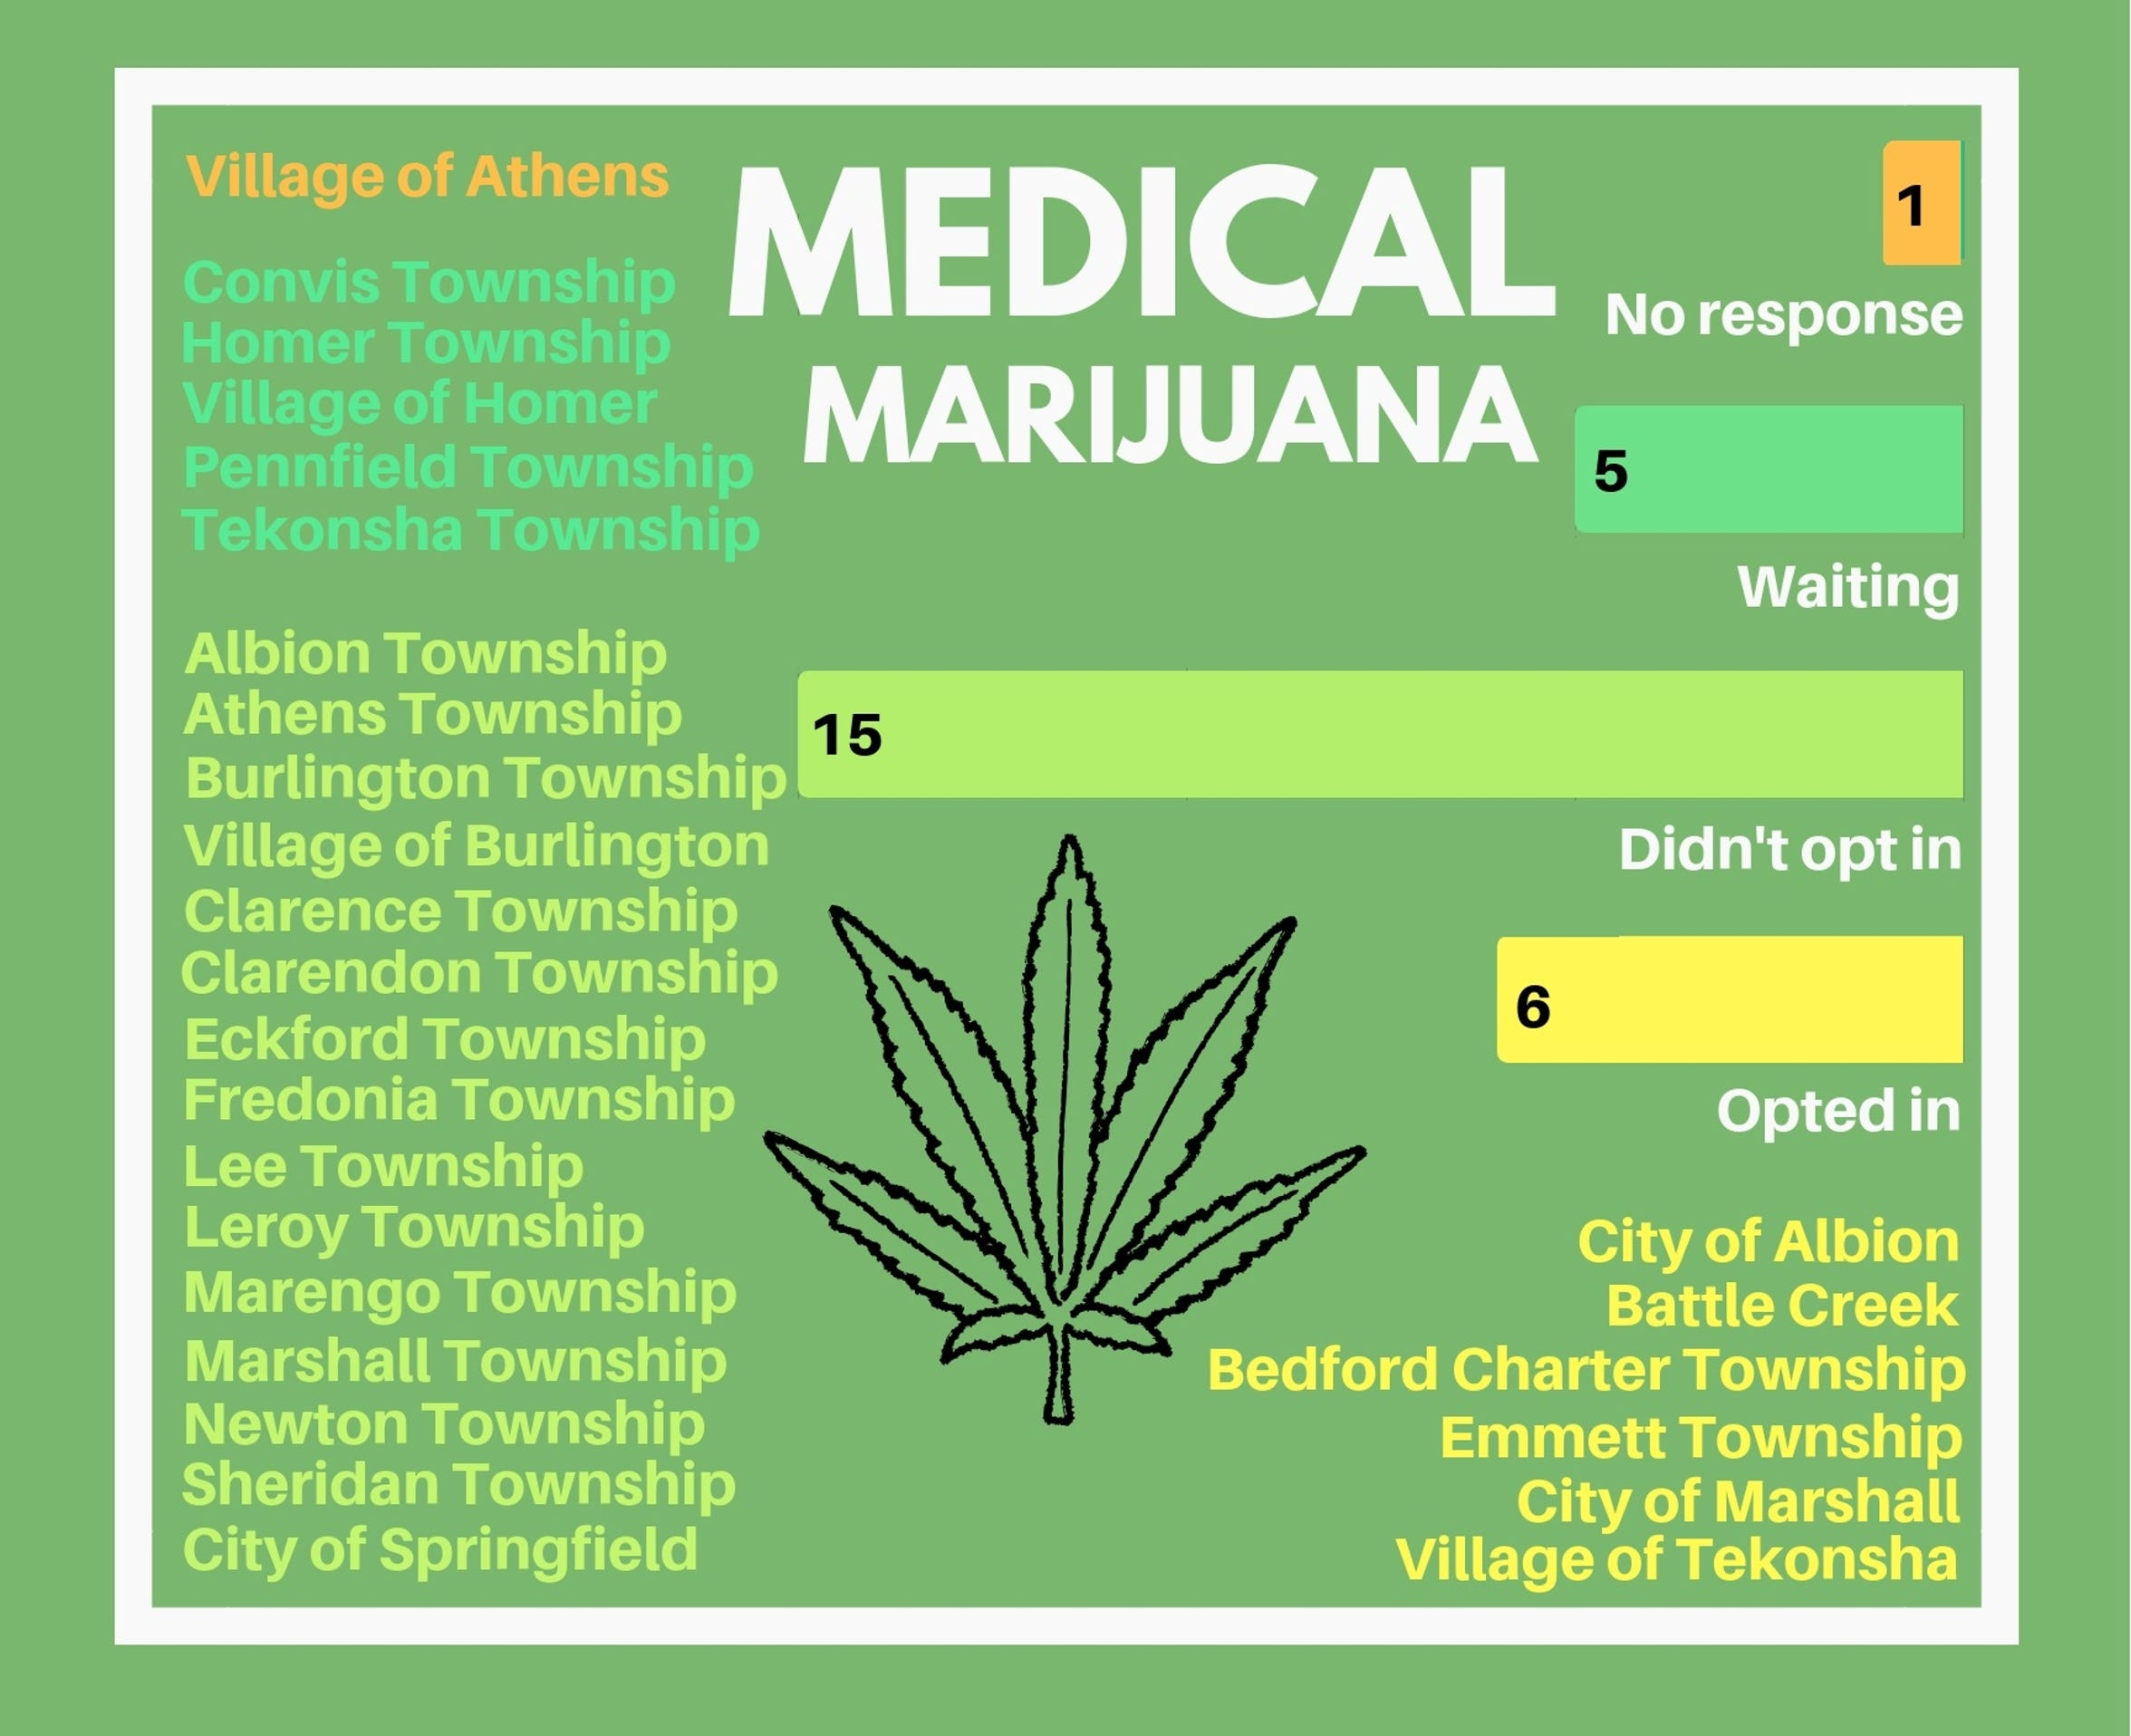 The stance of each Calhoun County municipality on medical marijuana as of Sept. 13, 2018.